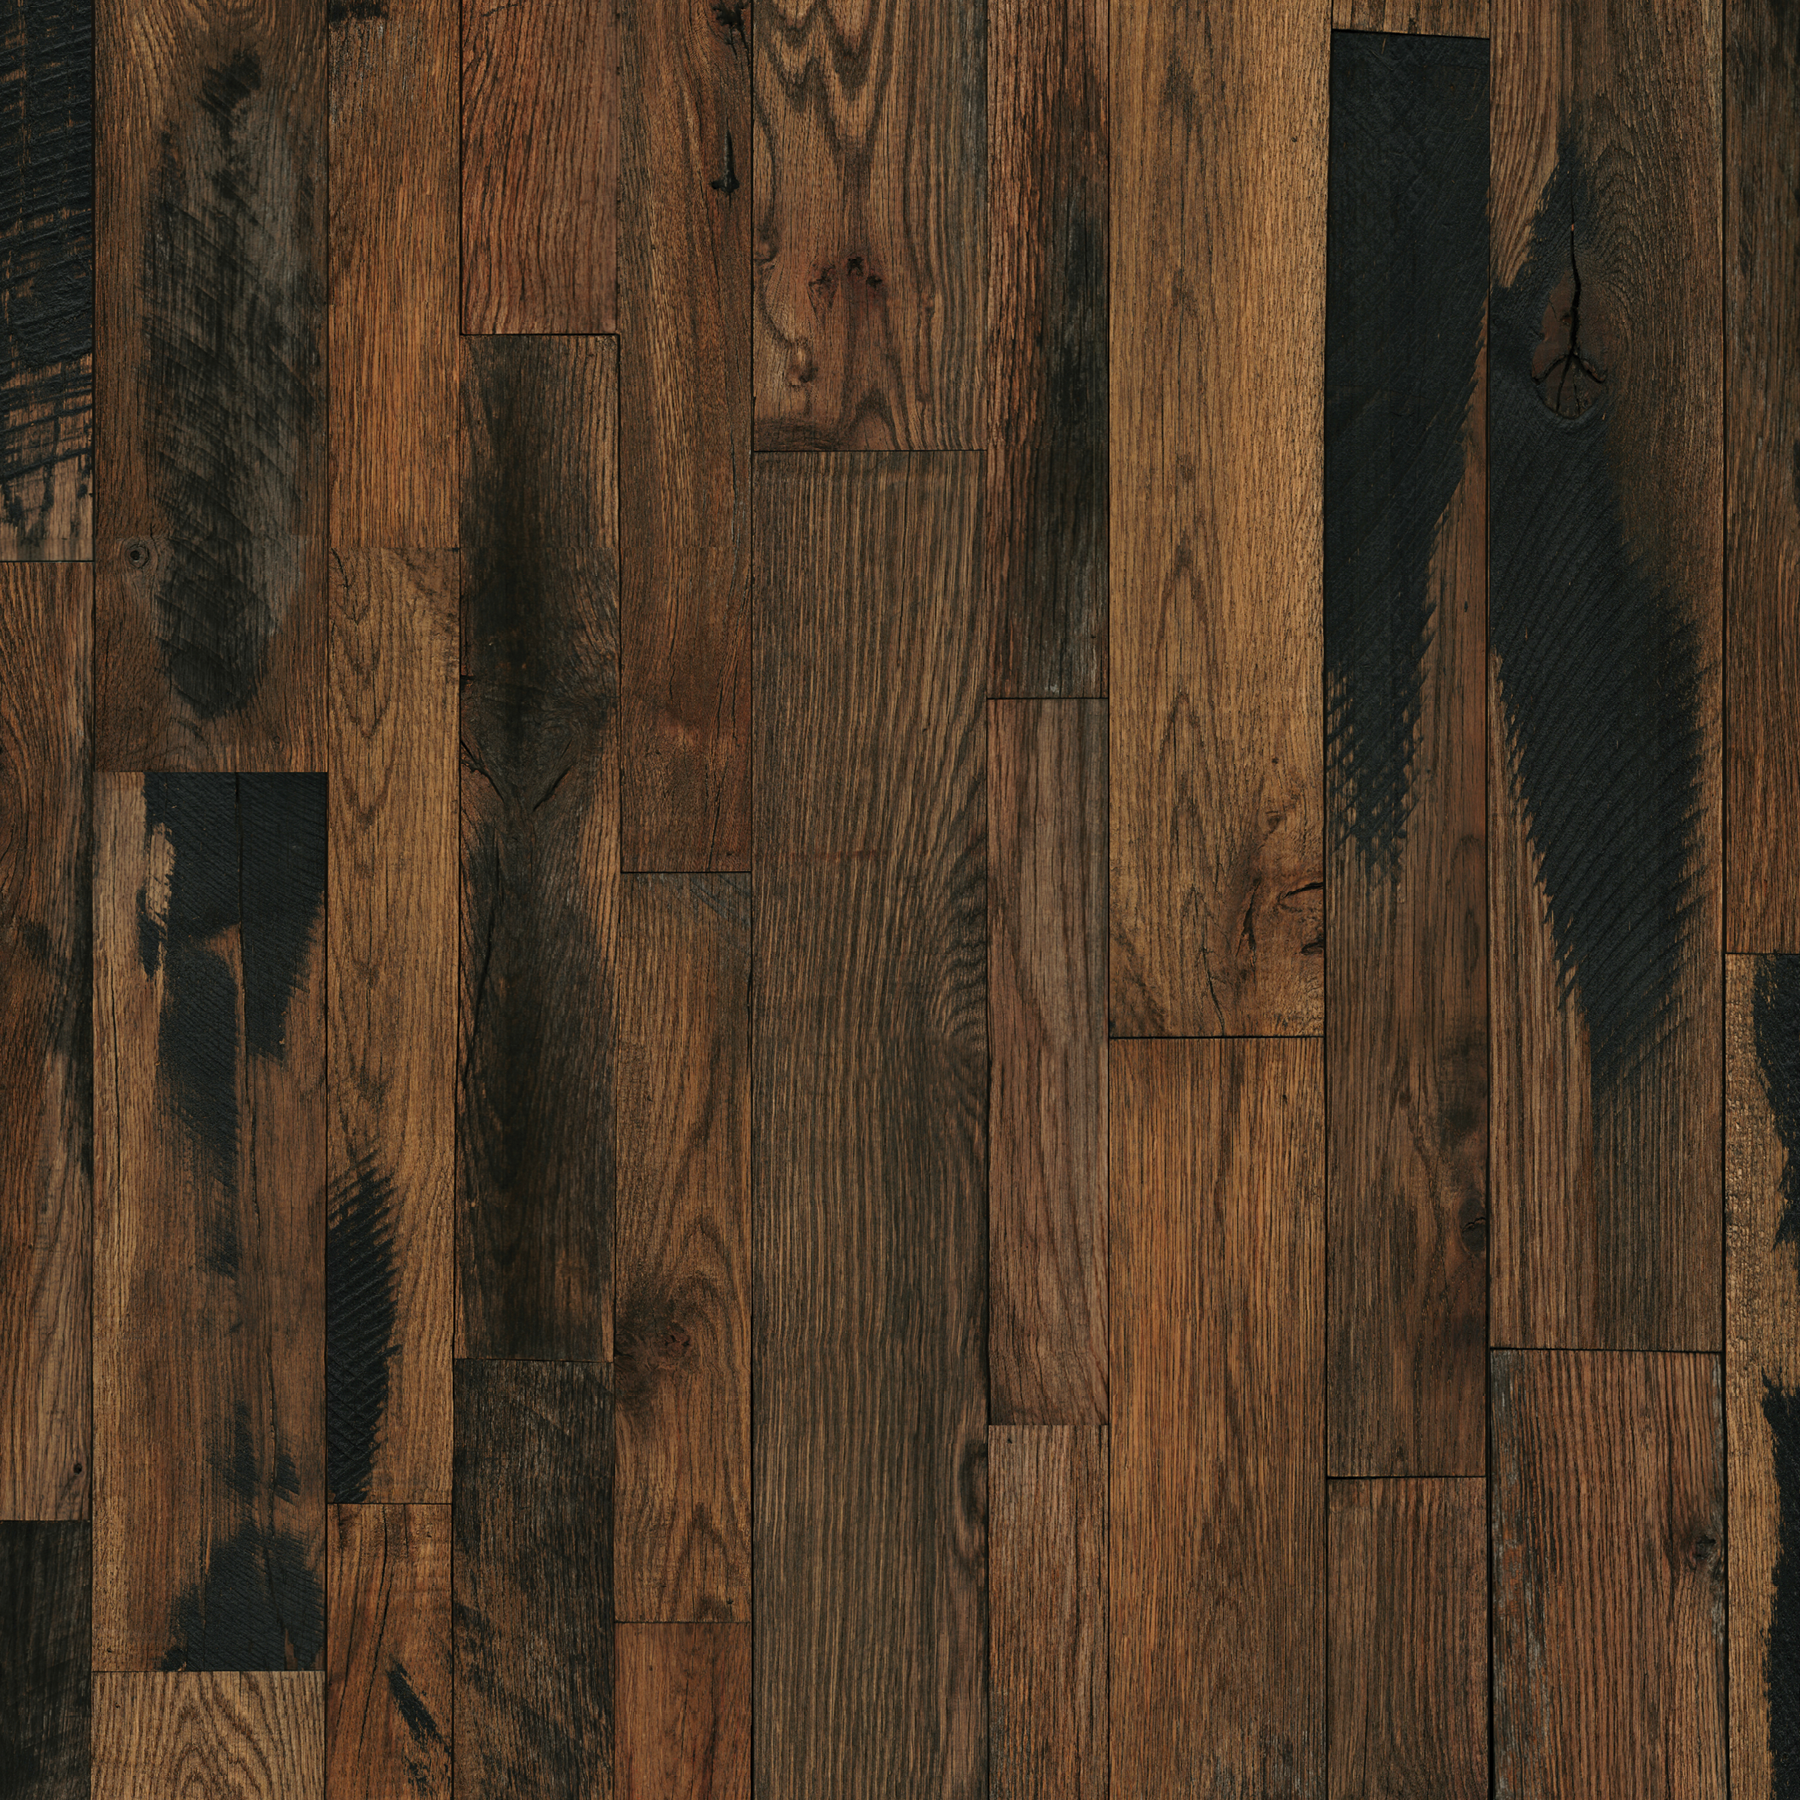 OAK // WIDE-PLANK / ROUGH / NATURAL   | CLICK TO SEE IT CLOSR